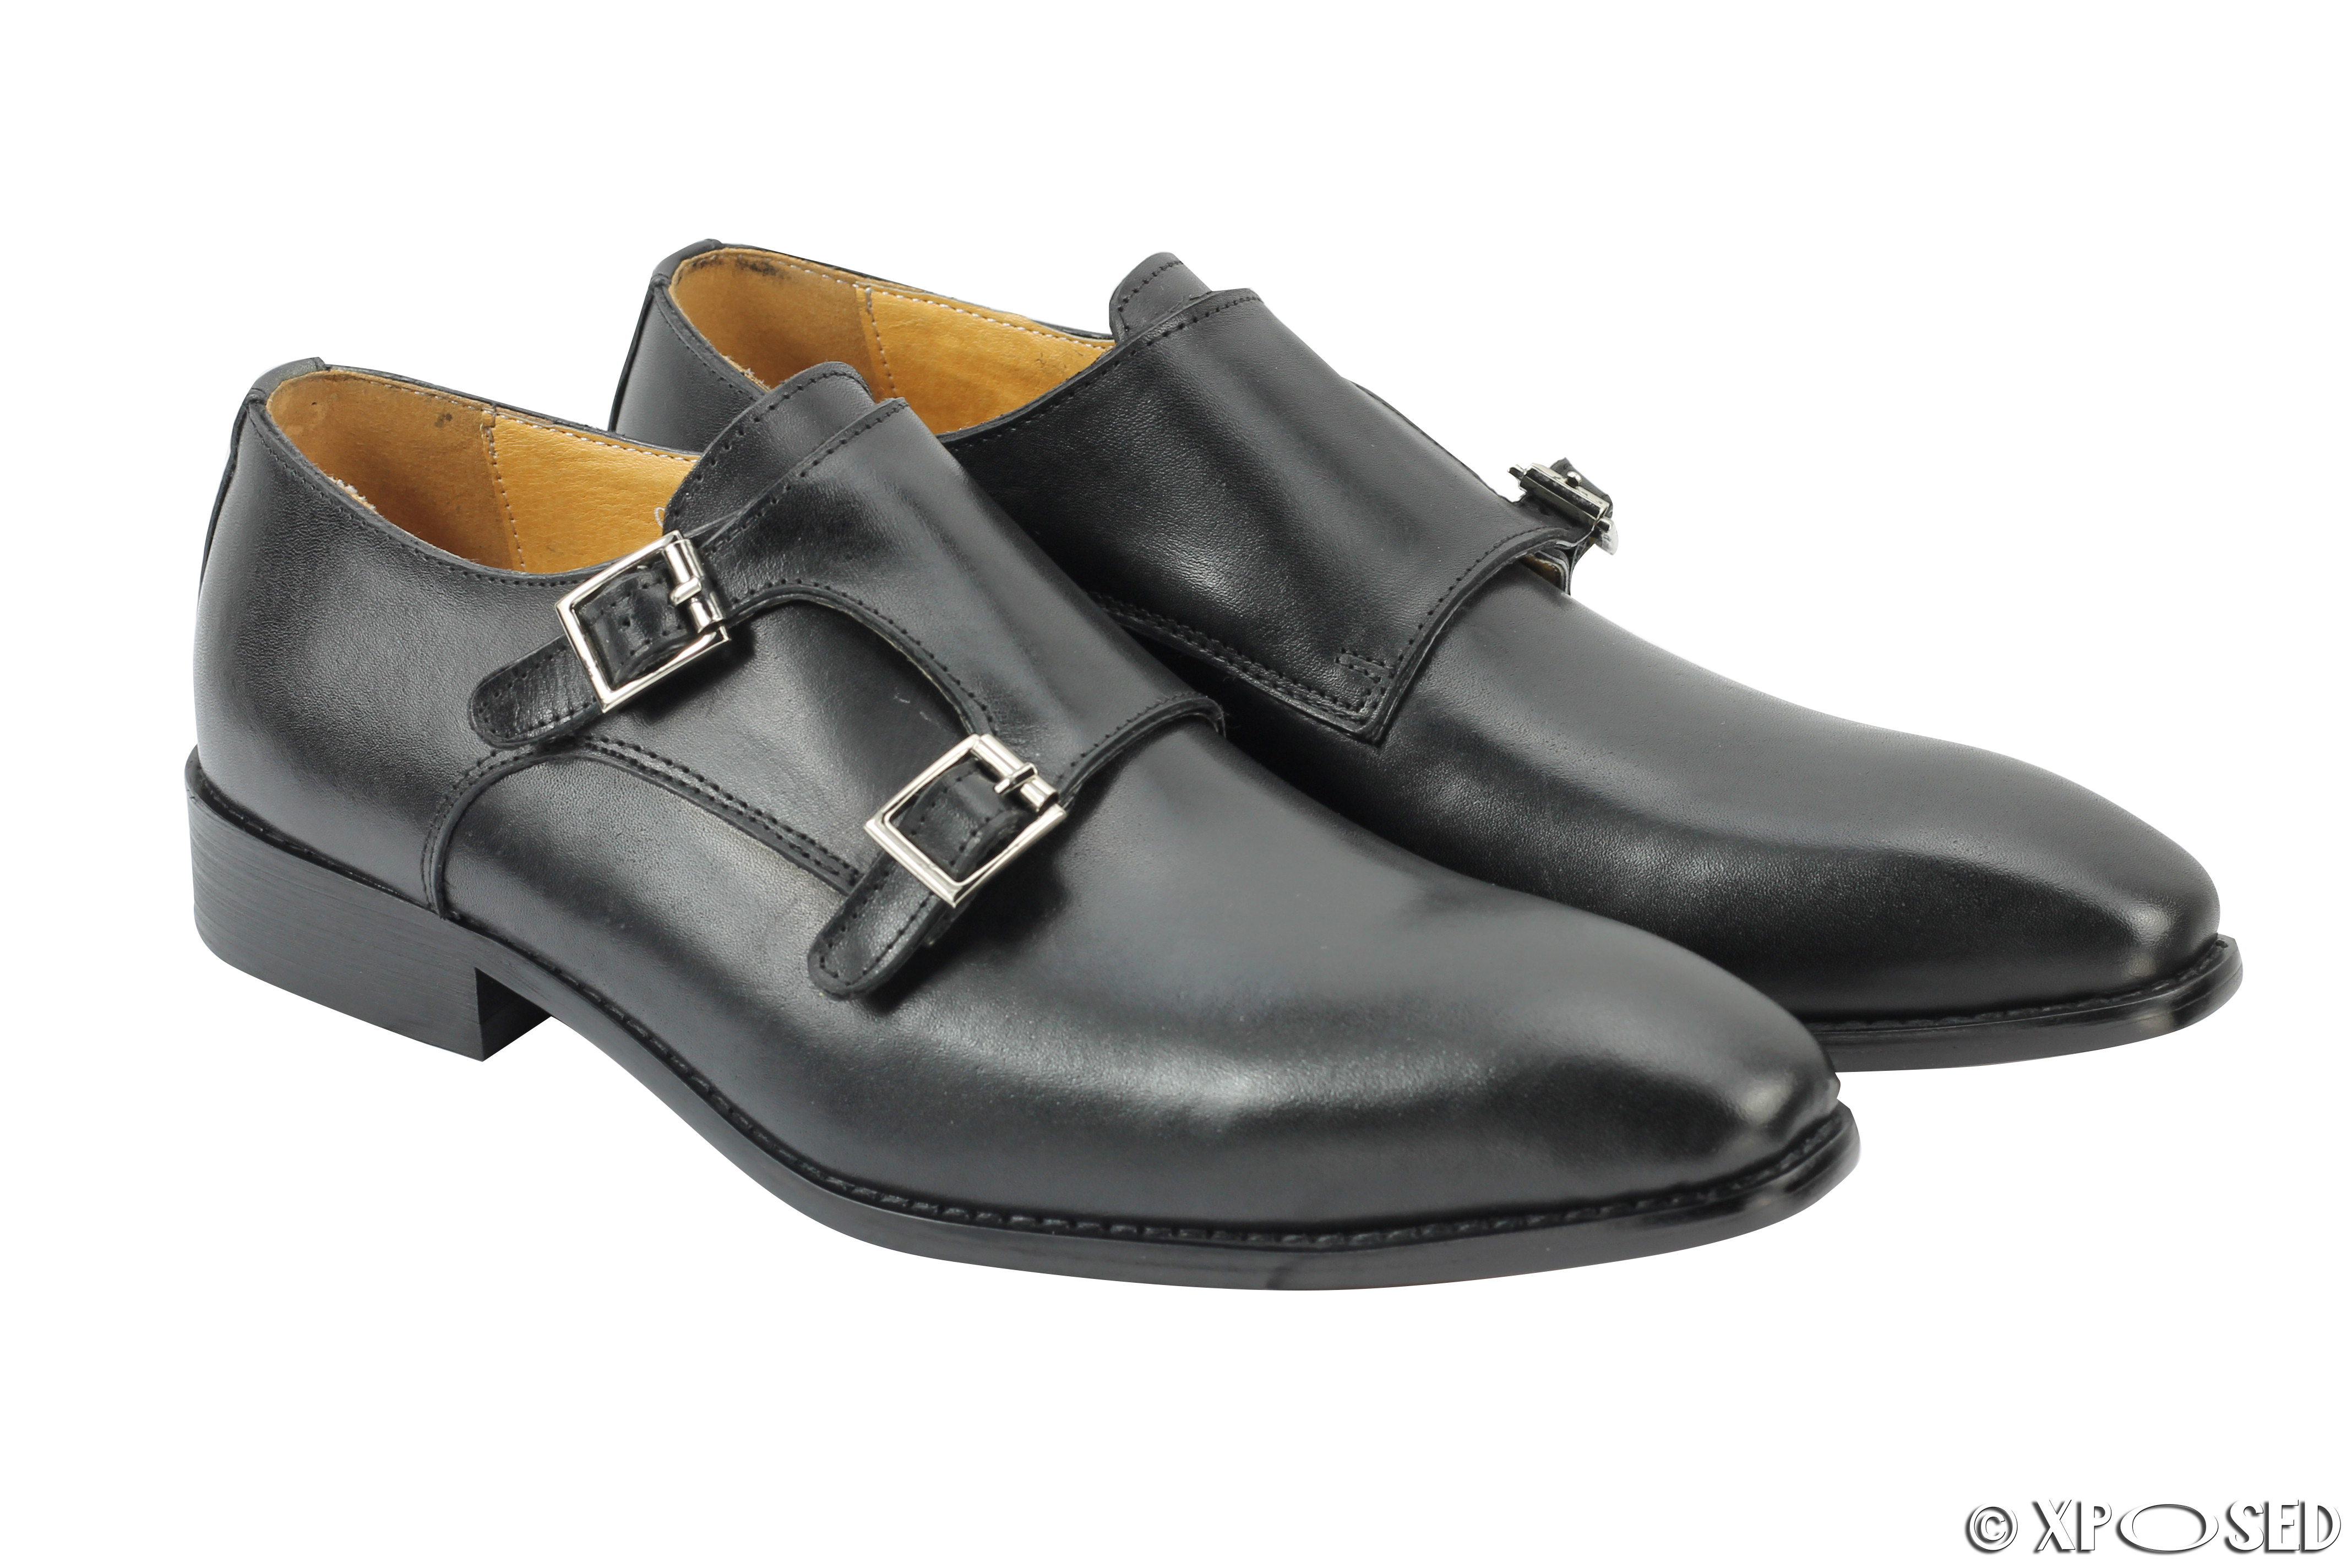 Mens Brown Leather Shoes With Buckle